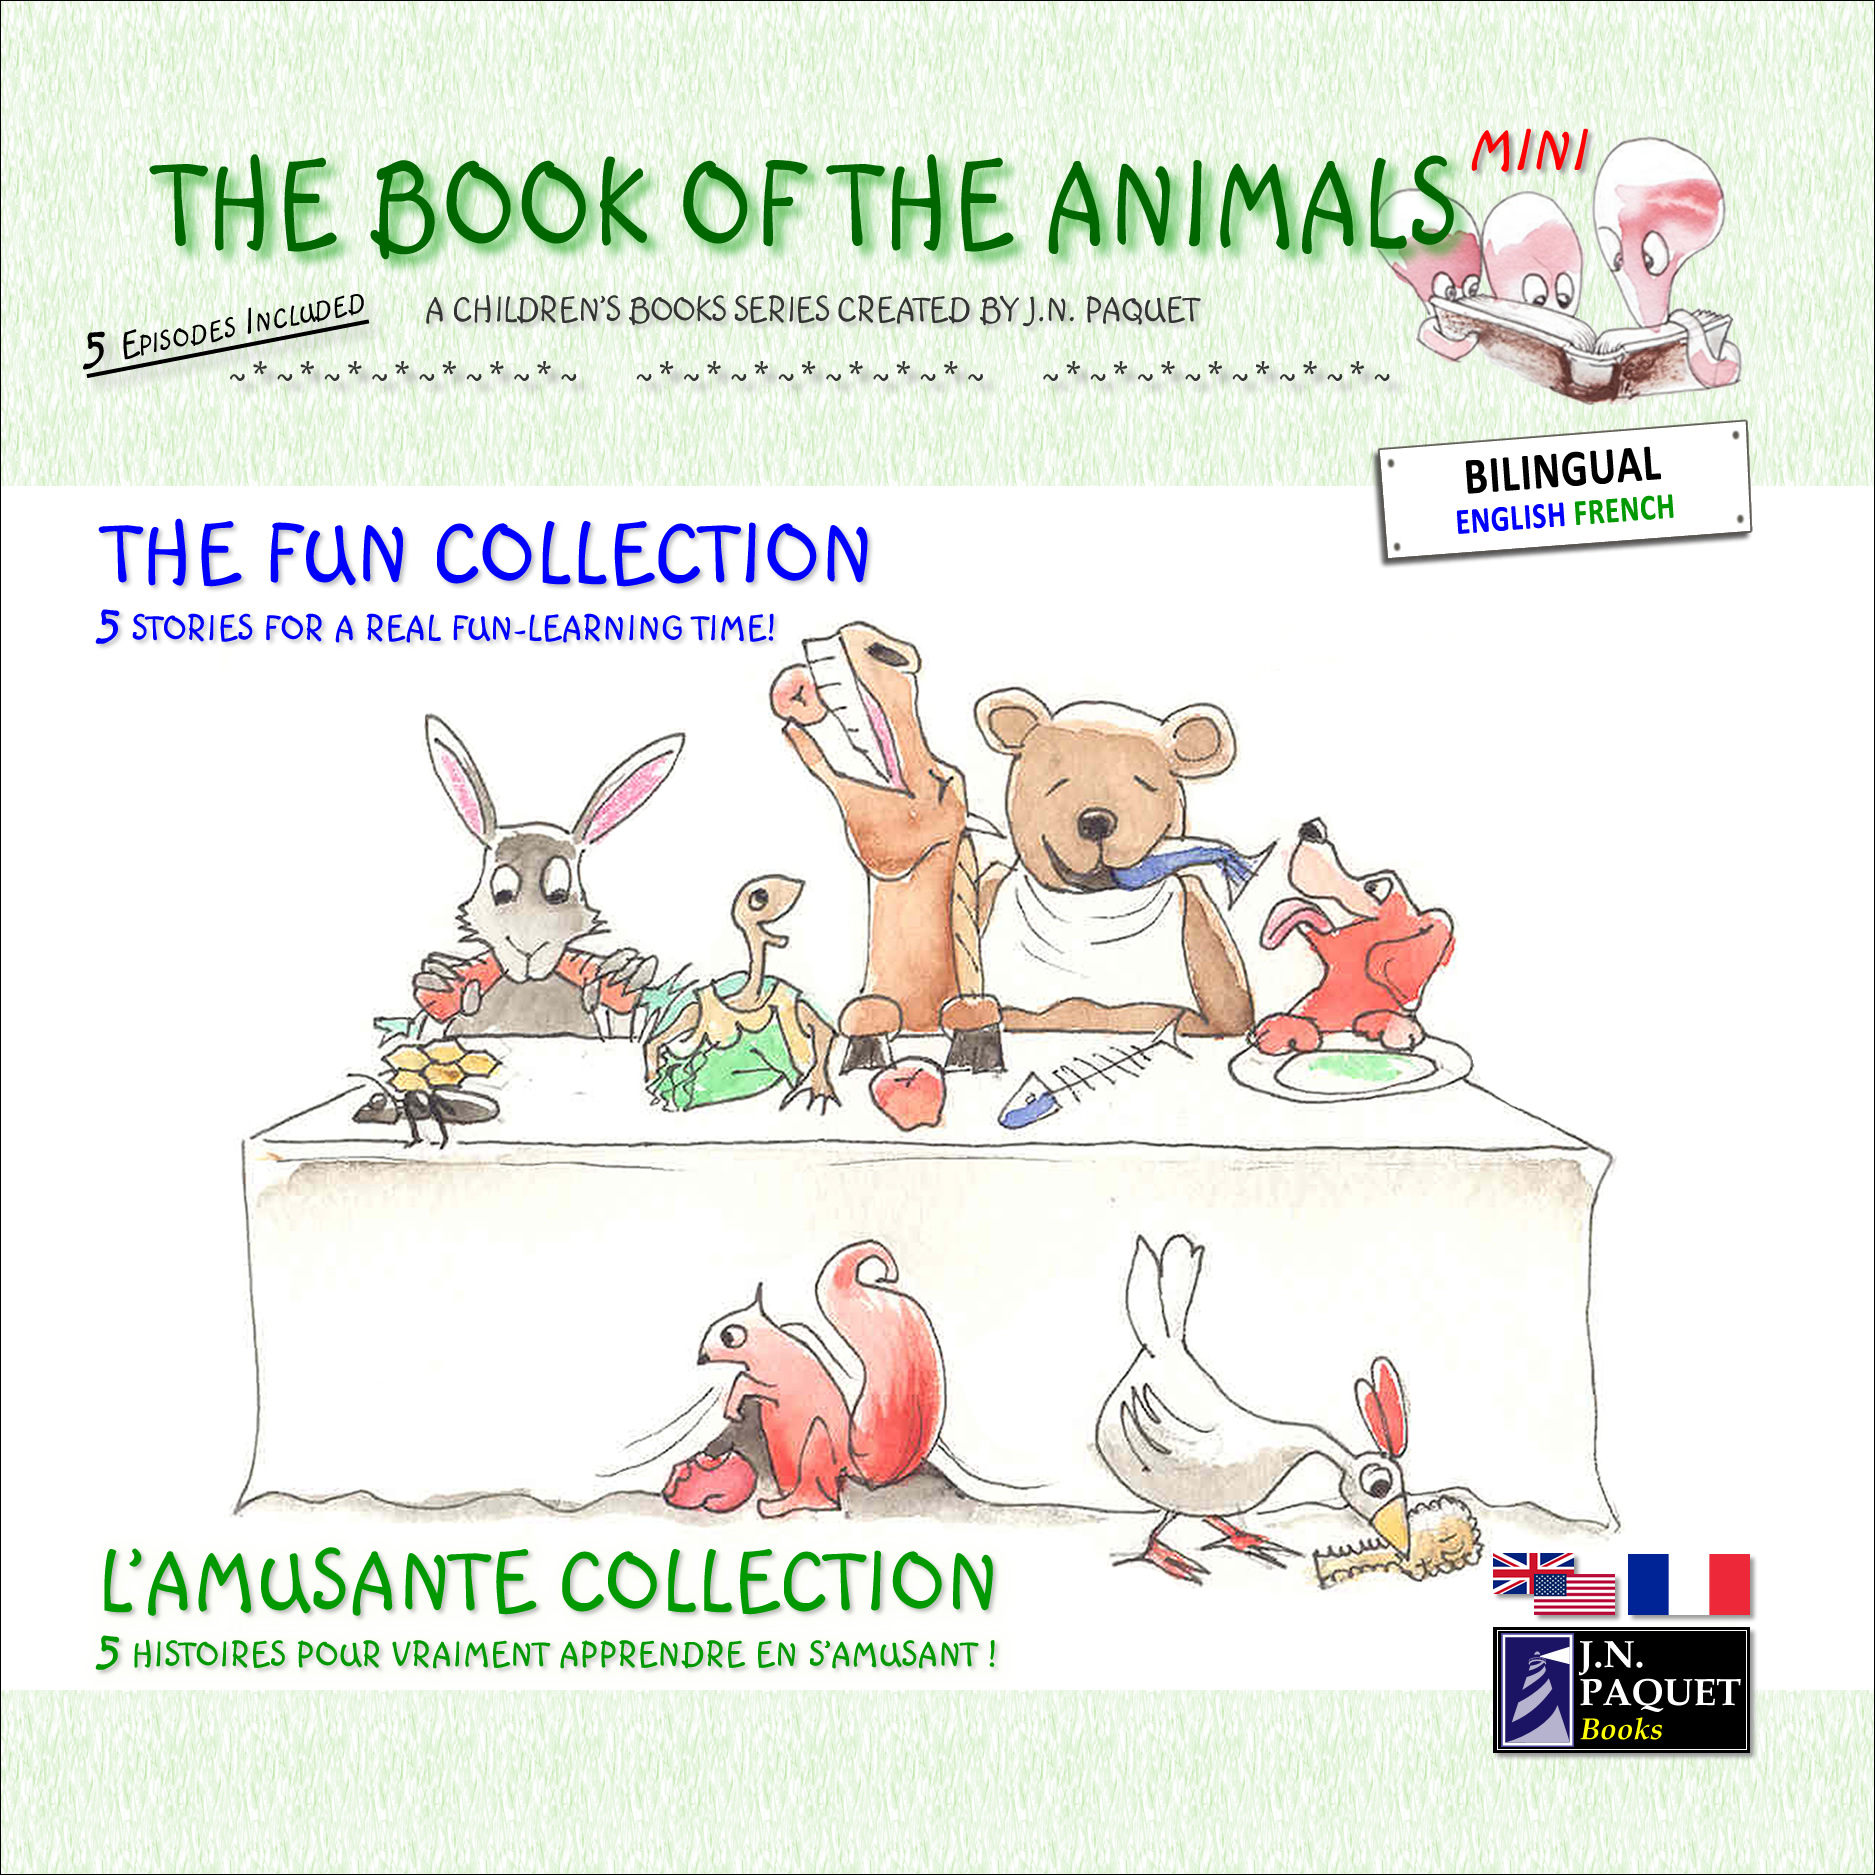 J.N. PAQUET - The Book of The Animals - Mini - The Fun Collection (Bilingual English-French)